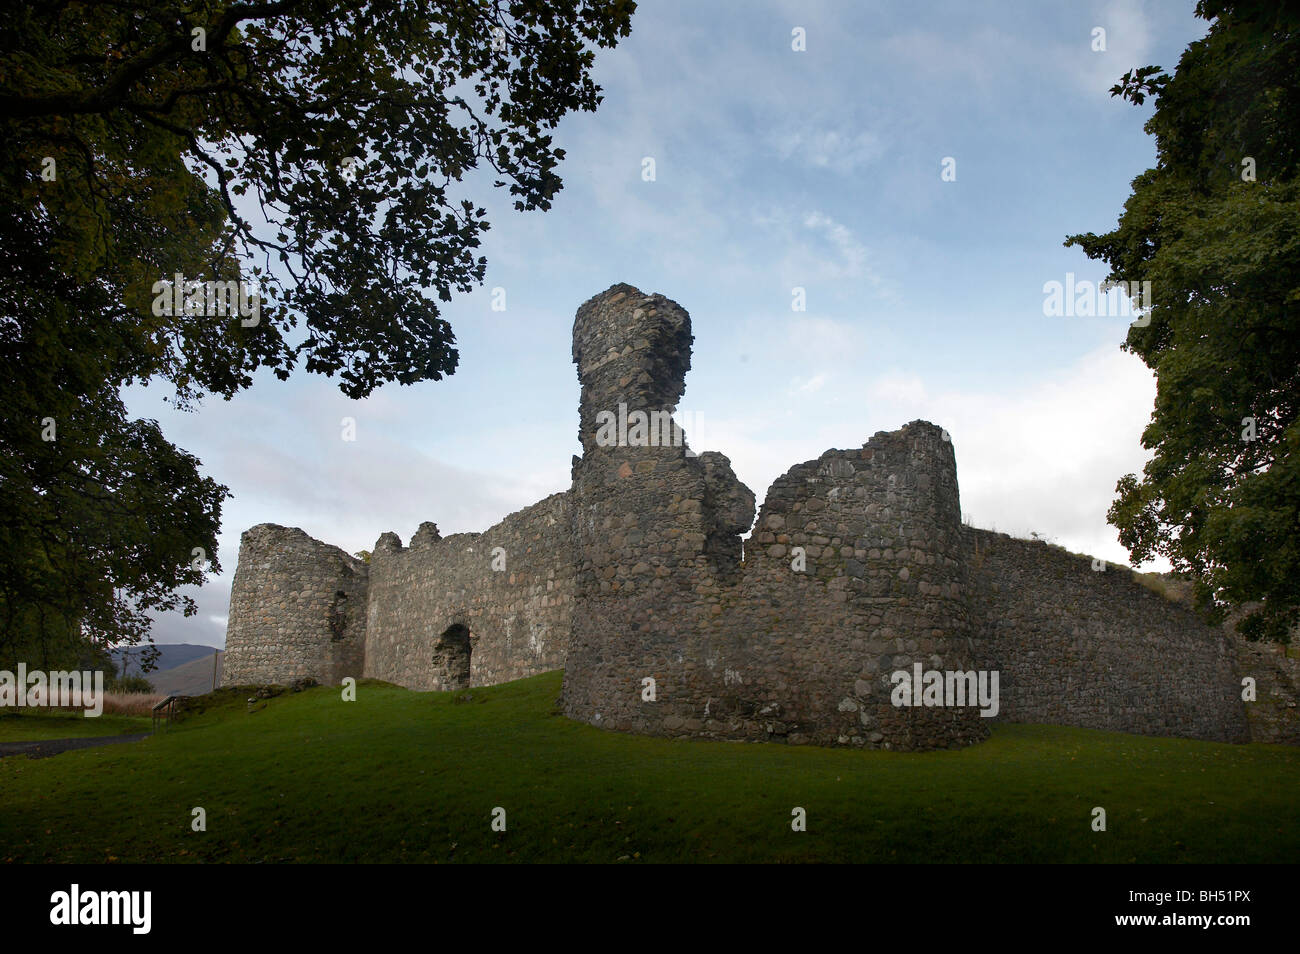 one of the most historic castles in the scottish highlands and built